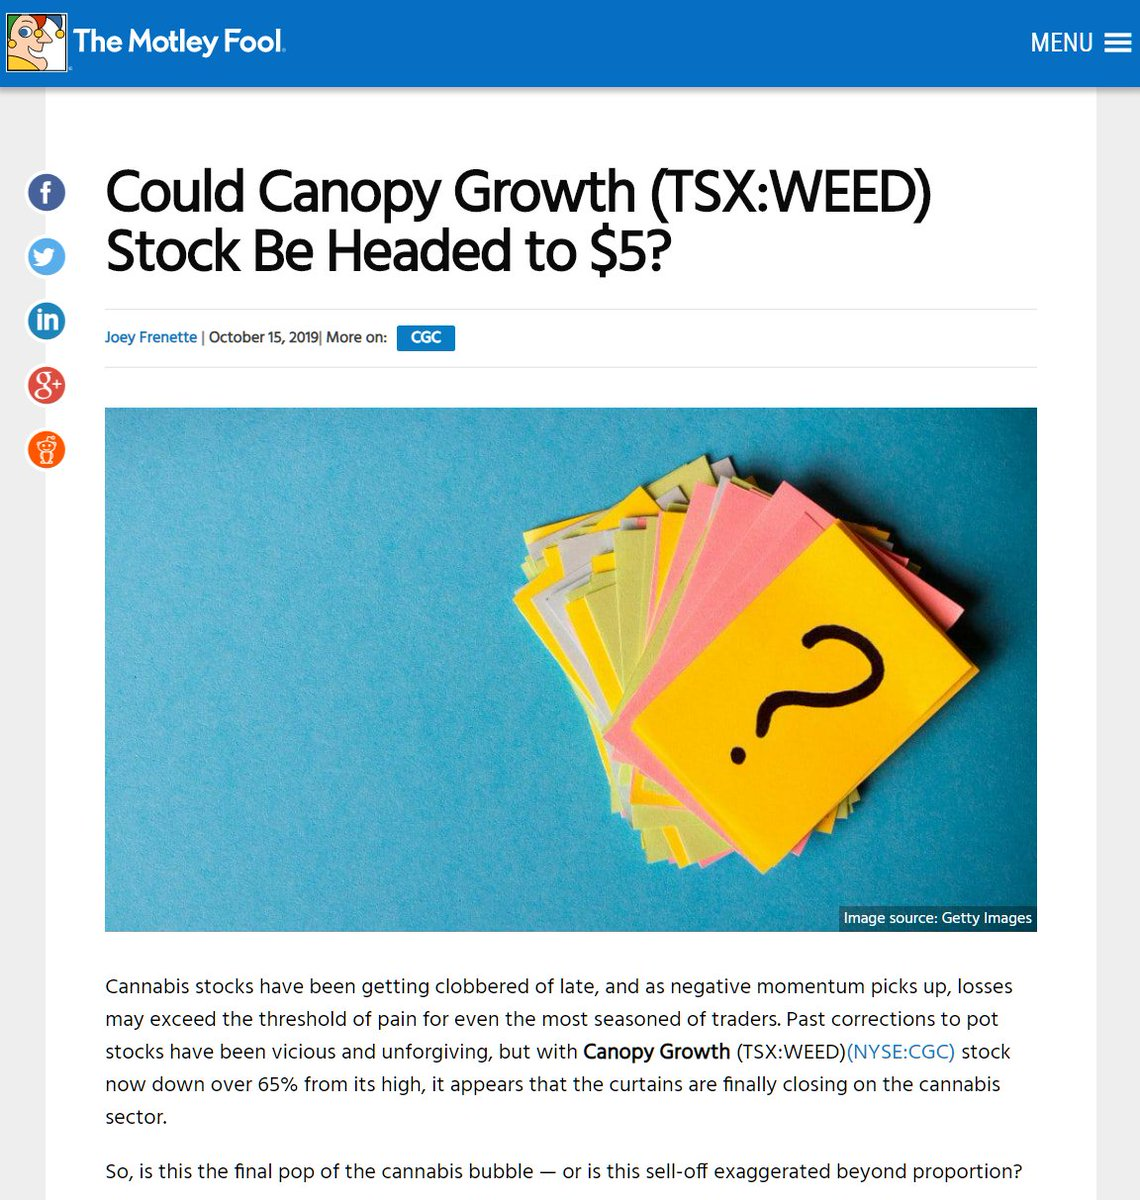 Weedstreet420 On Twitter Motley Fool Is Really The Worst Shit Ever They Use Clickbait Titles So They Can Sell You A 200 Paid Subscription Telling You To Buy The Next 1 000 Winner